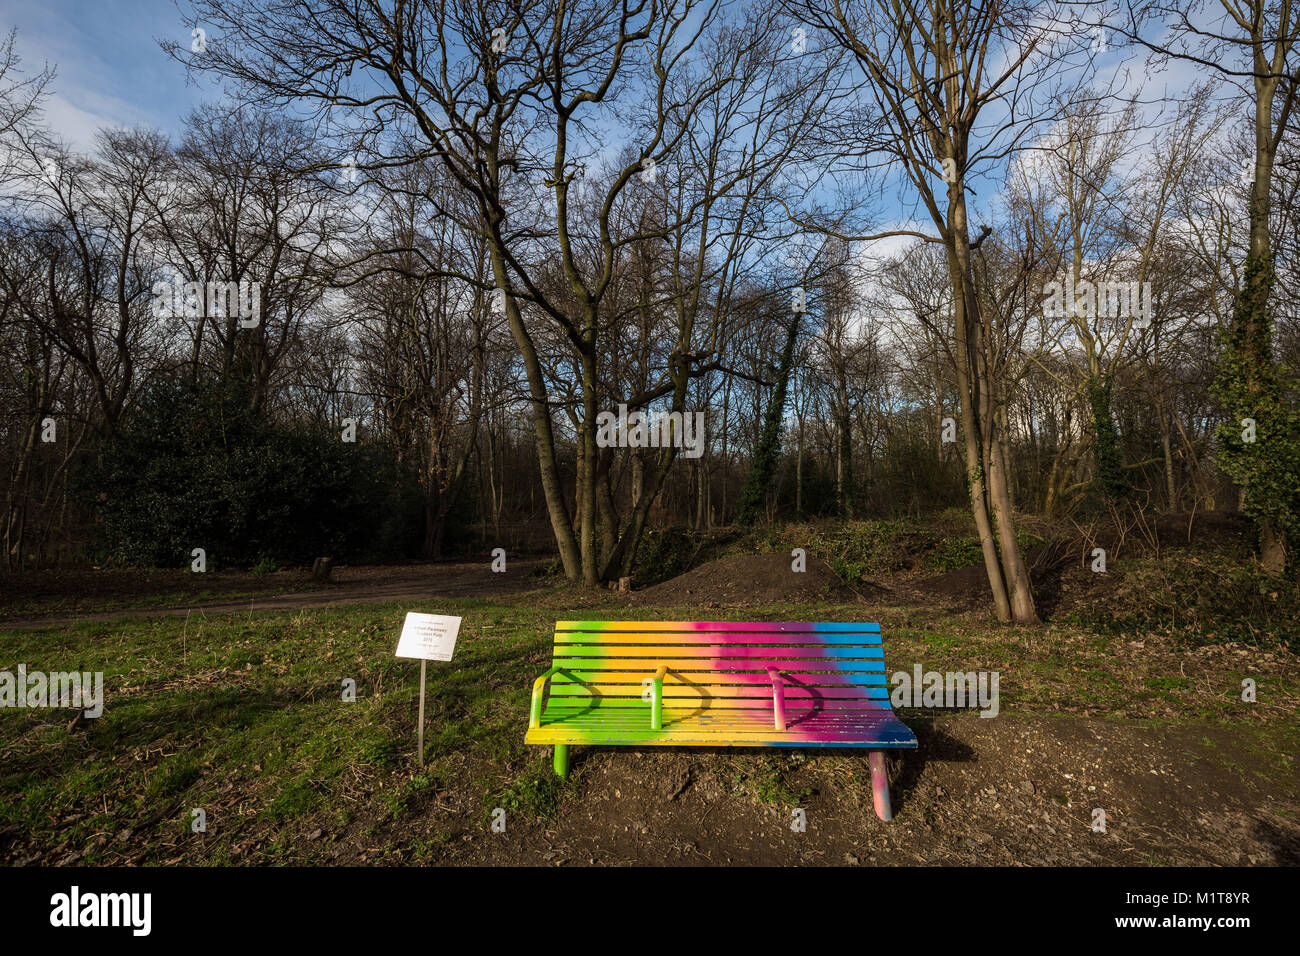 'Gradient Fade' by Adham Faramawy. Tower Hamlets Cemetery Park, East London, UK. - Stock Image